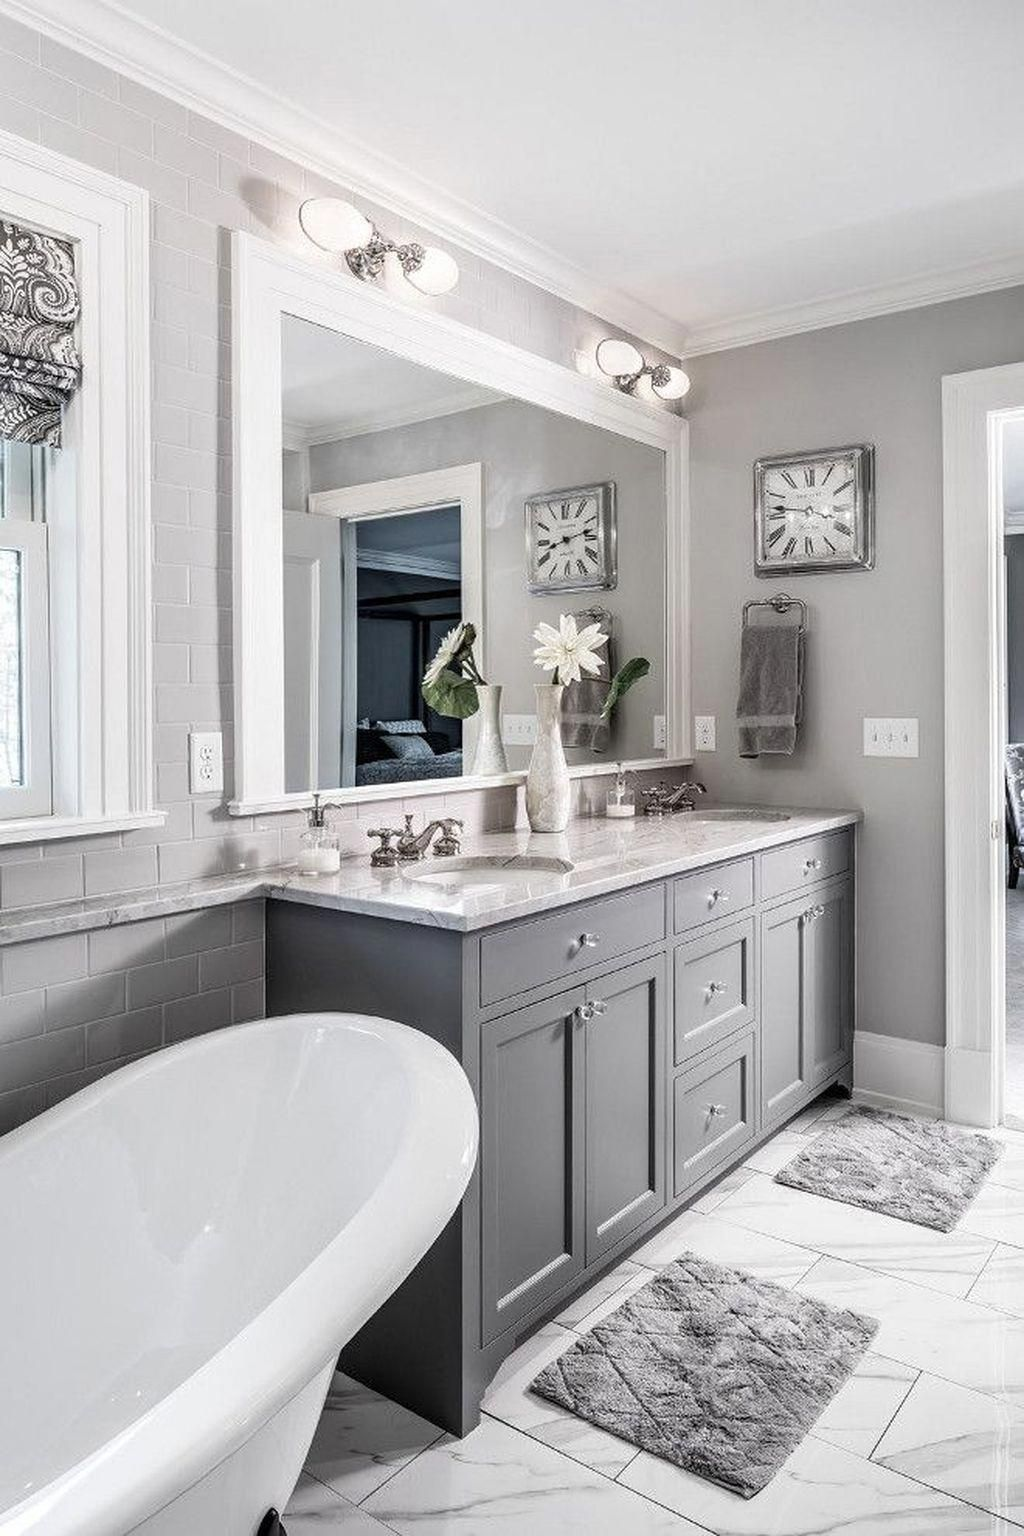 7 Bathroom Cabinet Ideas For Your Inspiration Bathroom Suites And Designs Bathrooms Remodel Bathroom Inspiration Bathroom Color